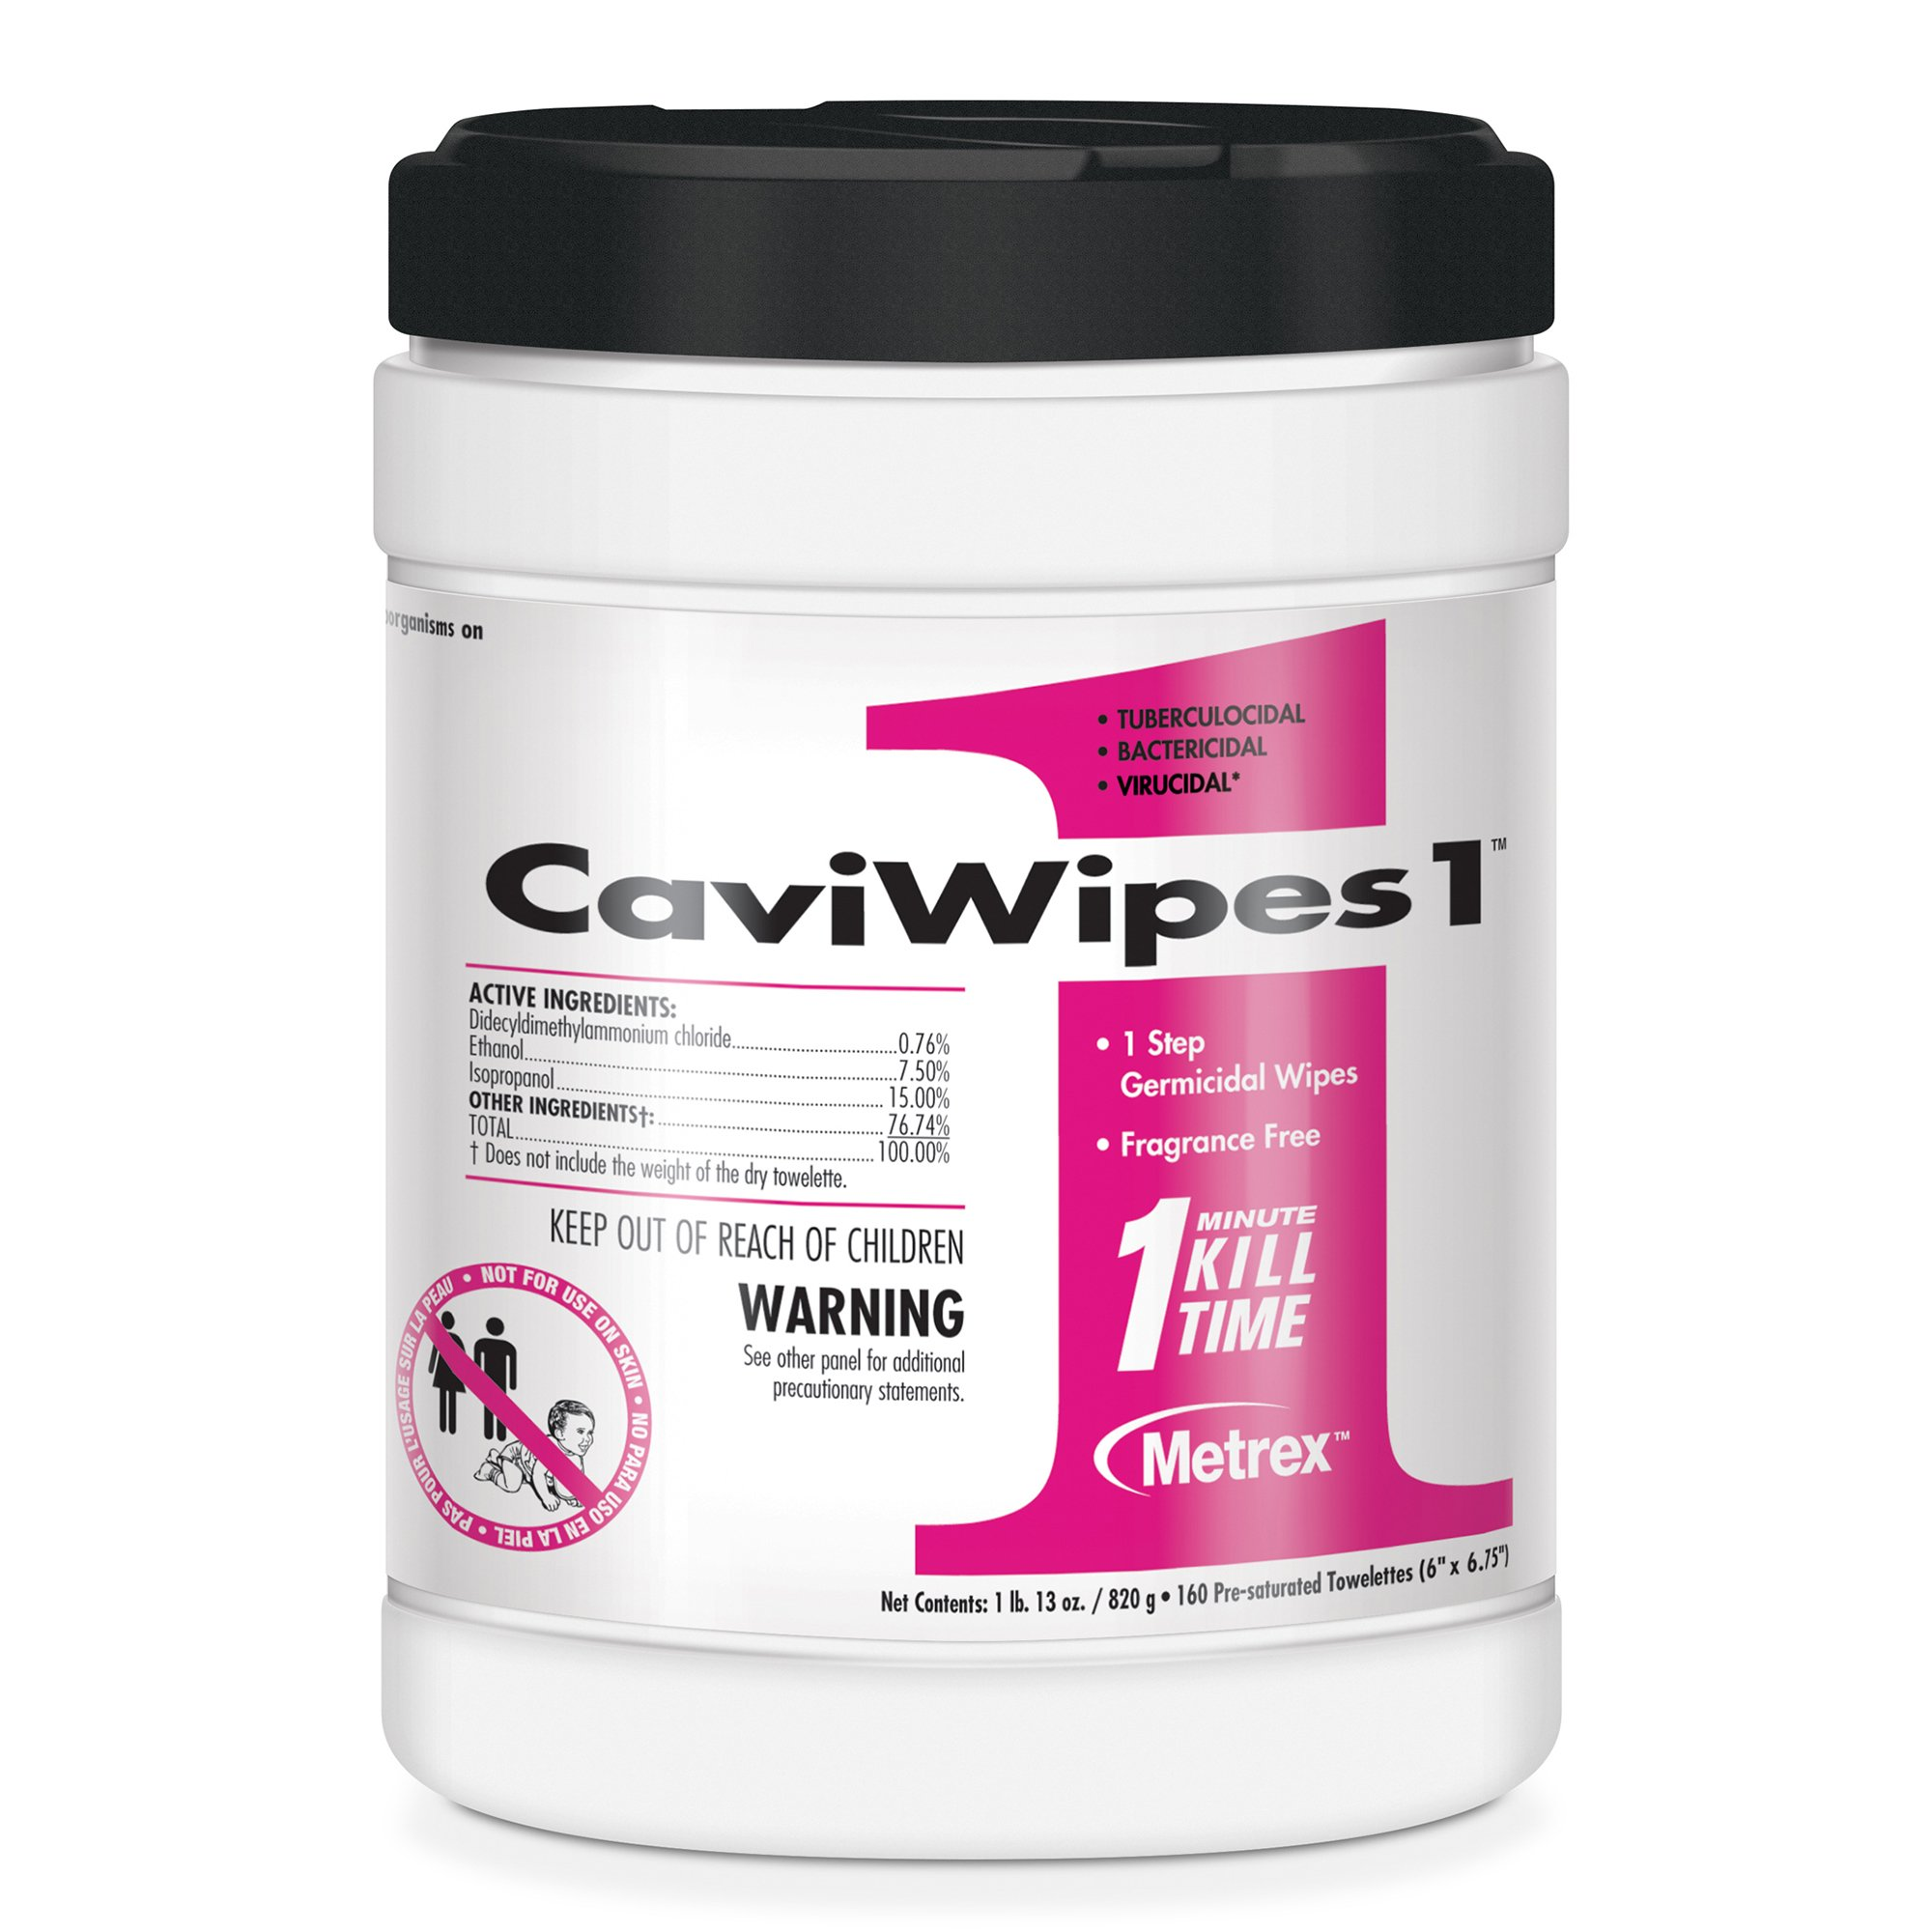 """CaviWipes1 Surface Disinfectant Premoistened Alcohol Based Wipe, NonSterile, 13-5100, 6 X 6-3/4"""" Canister - Count of 160"""